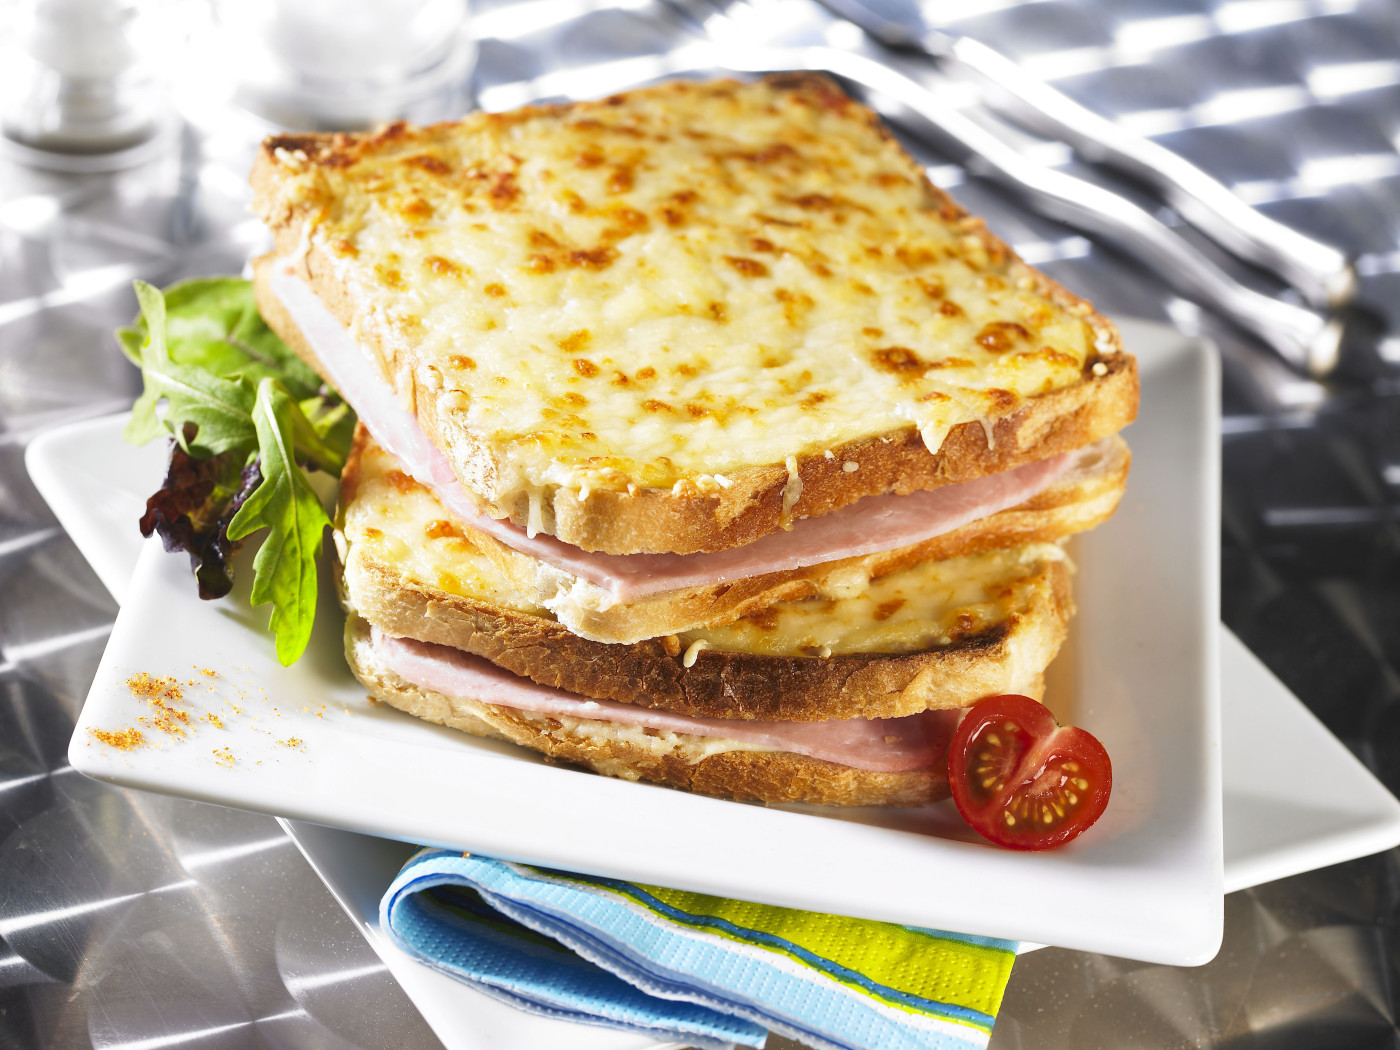 A plate of Croque Monsieur